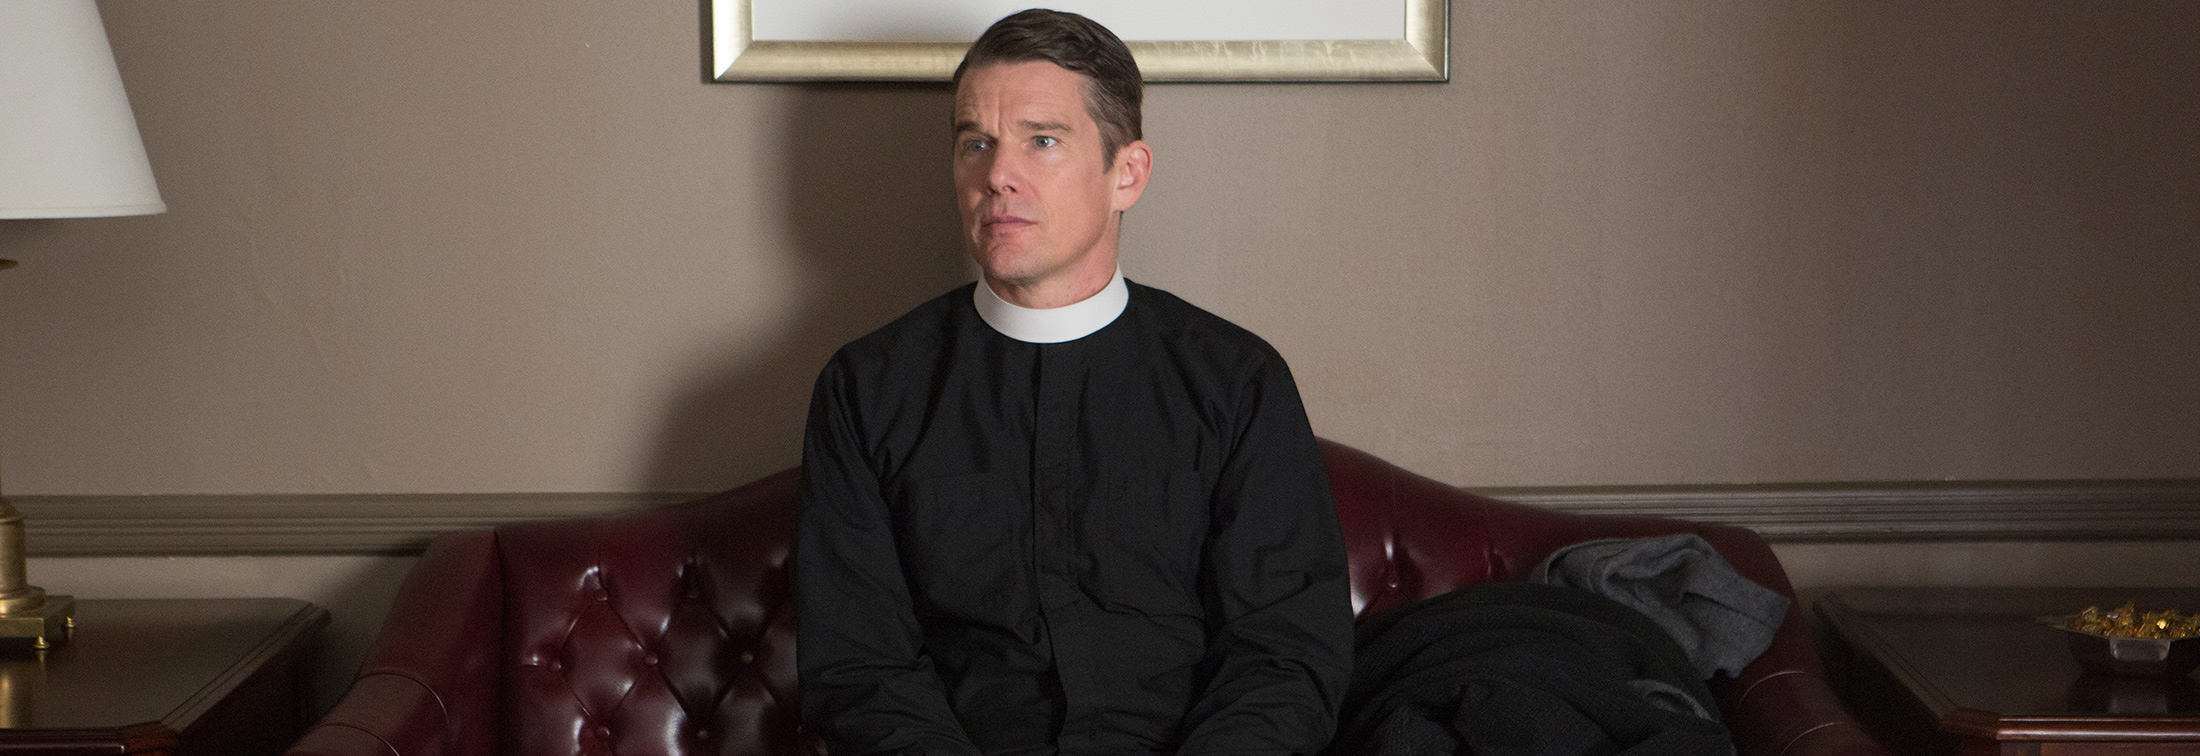 First Reformed - A meticulous drama simultaneously stunning and ominous